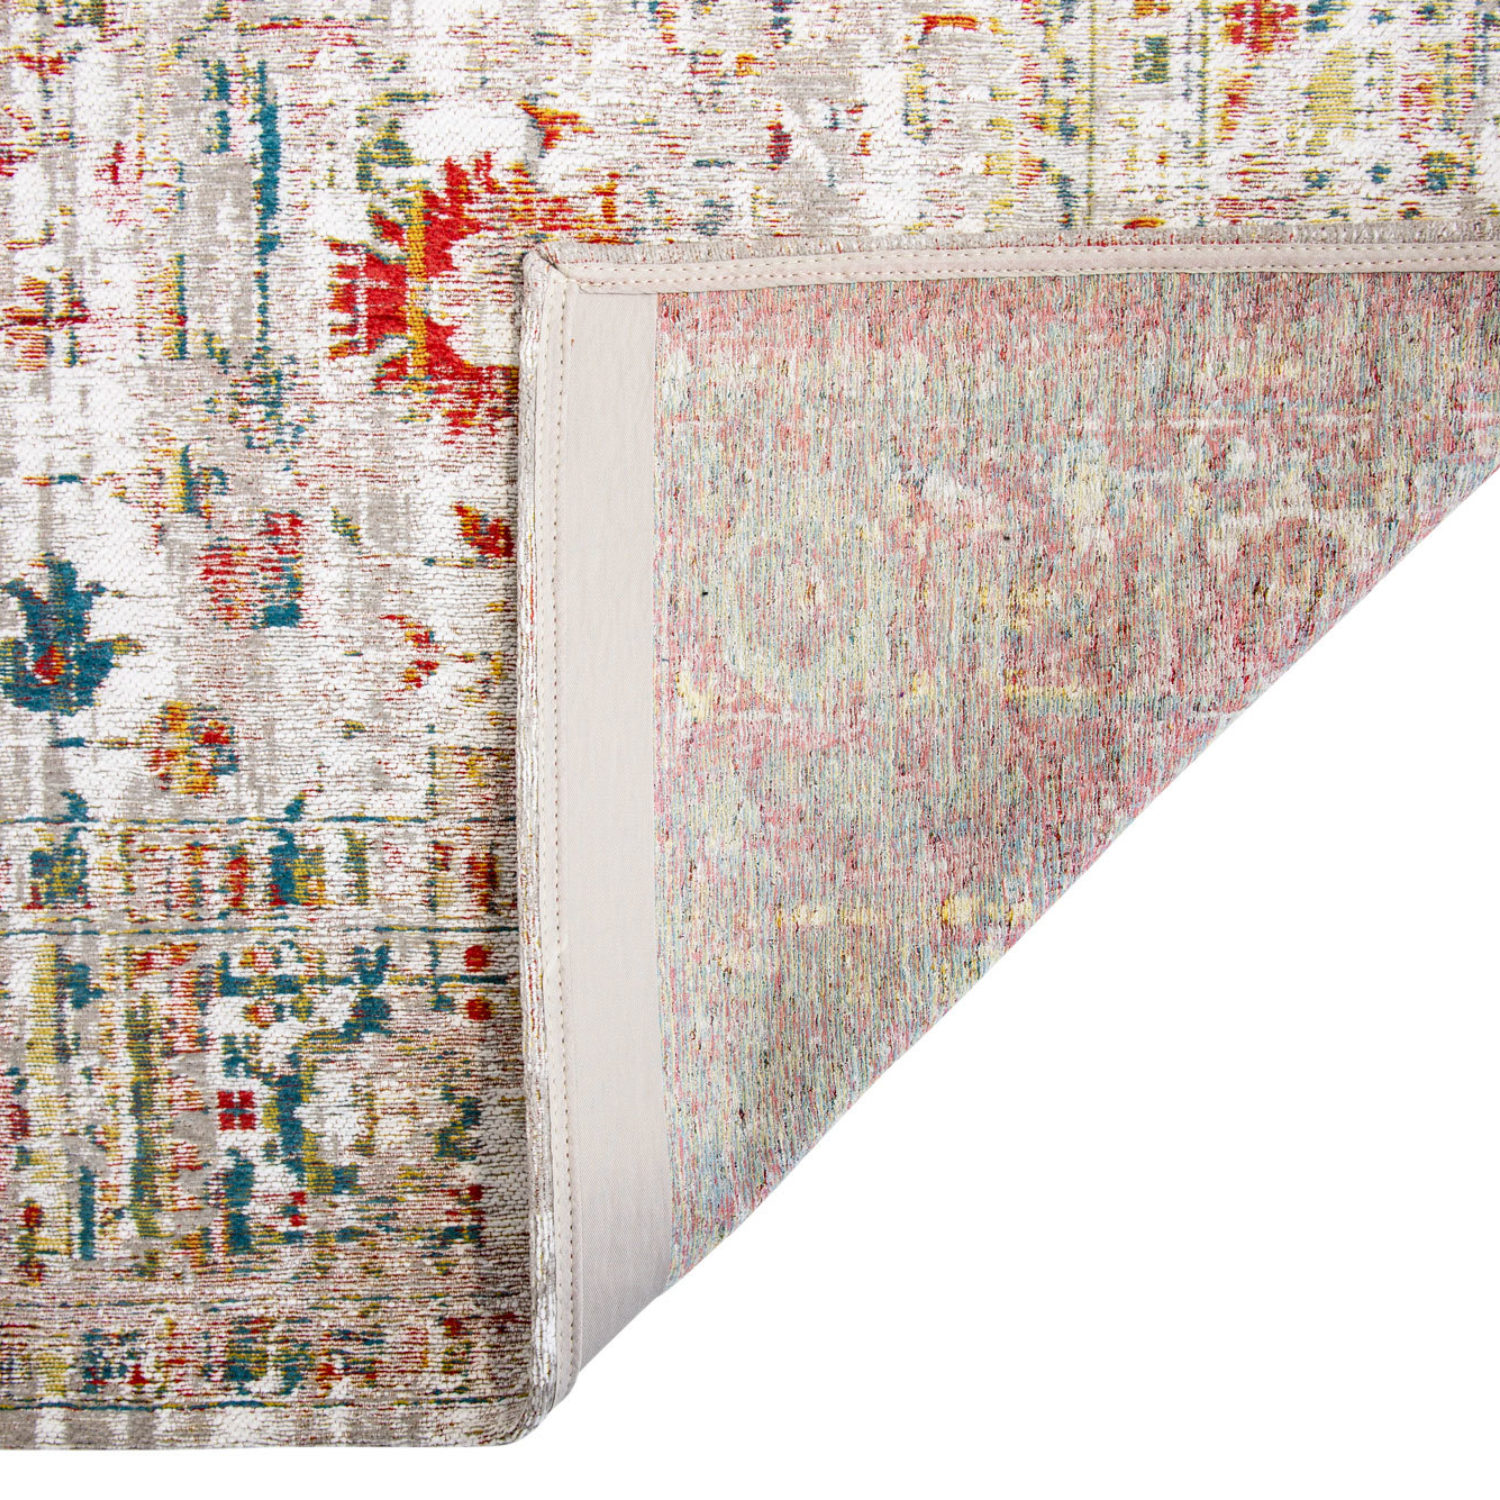 Ushak is derived from the rug designs made by the Turkish tribe of the same name